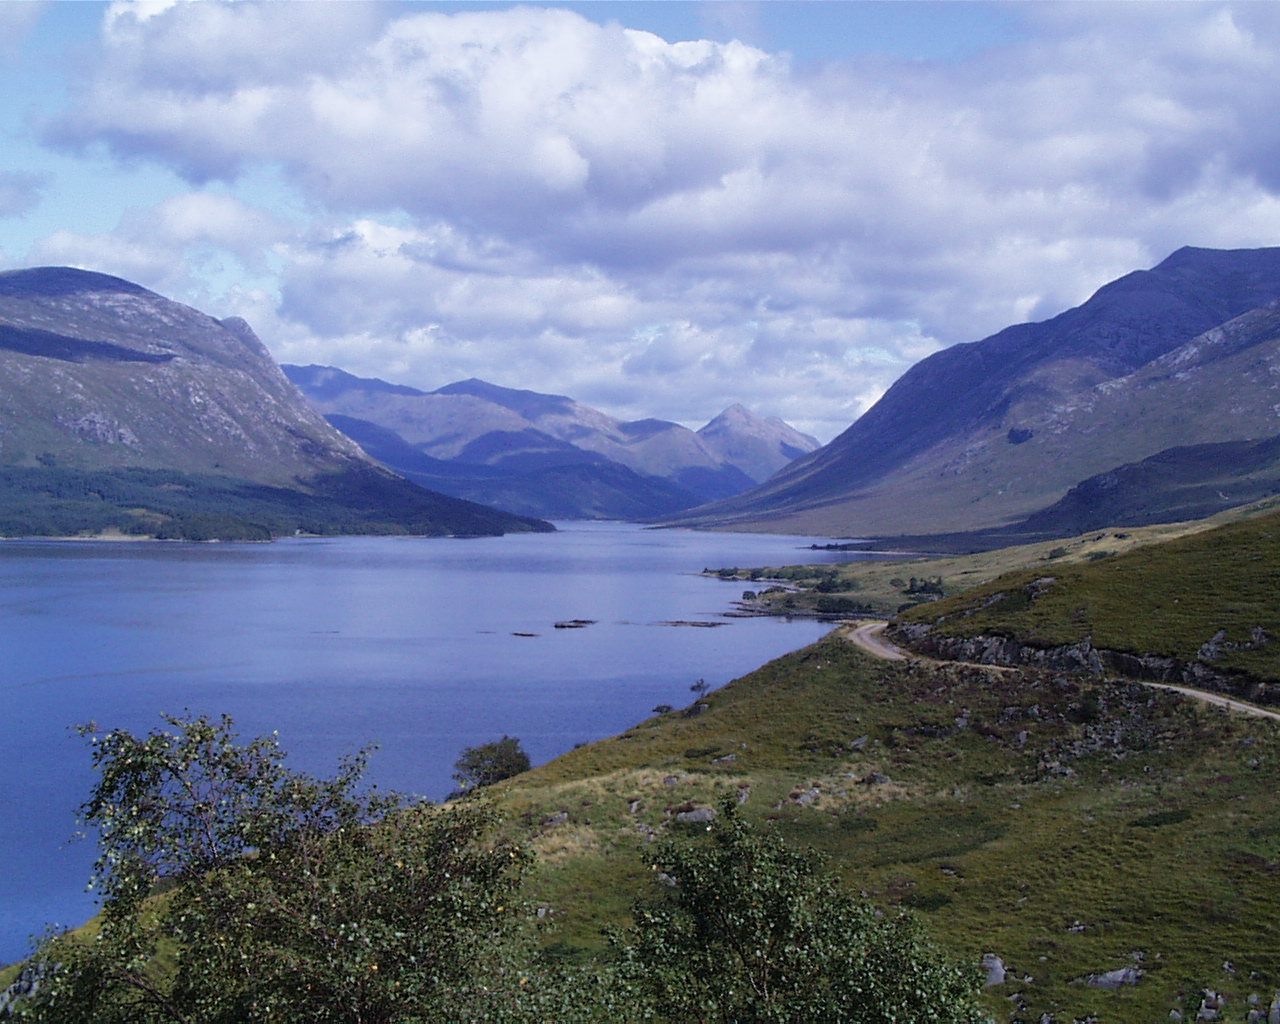 Photo of loch etive